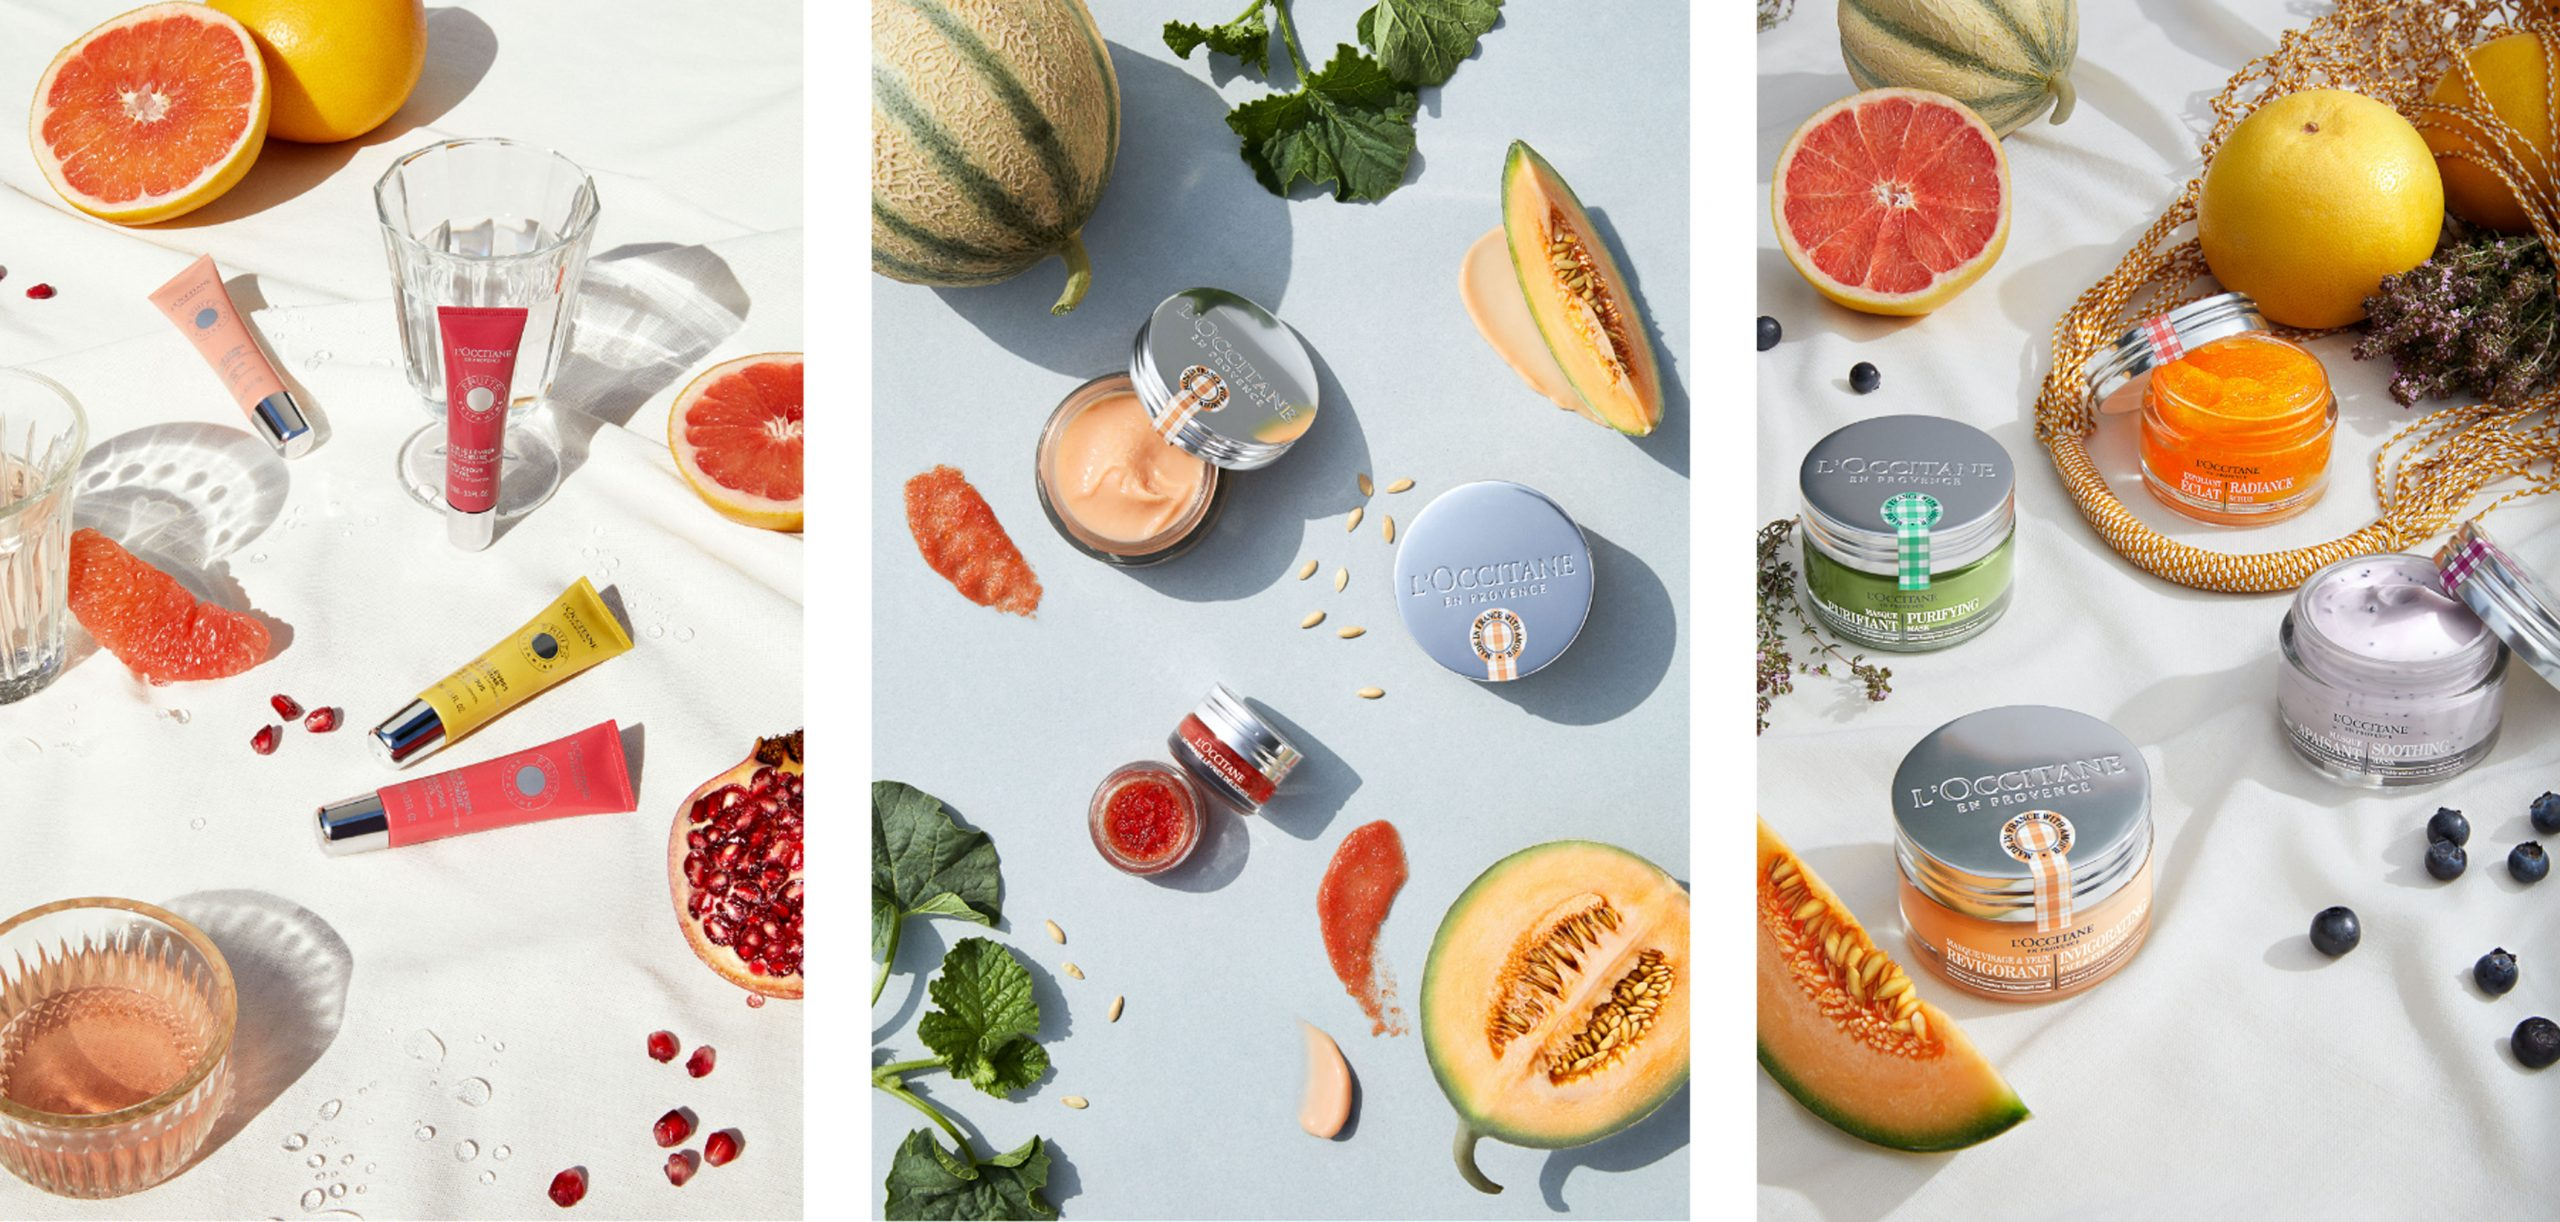 L'Occitane reveal your colors fruits